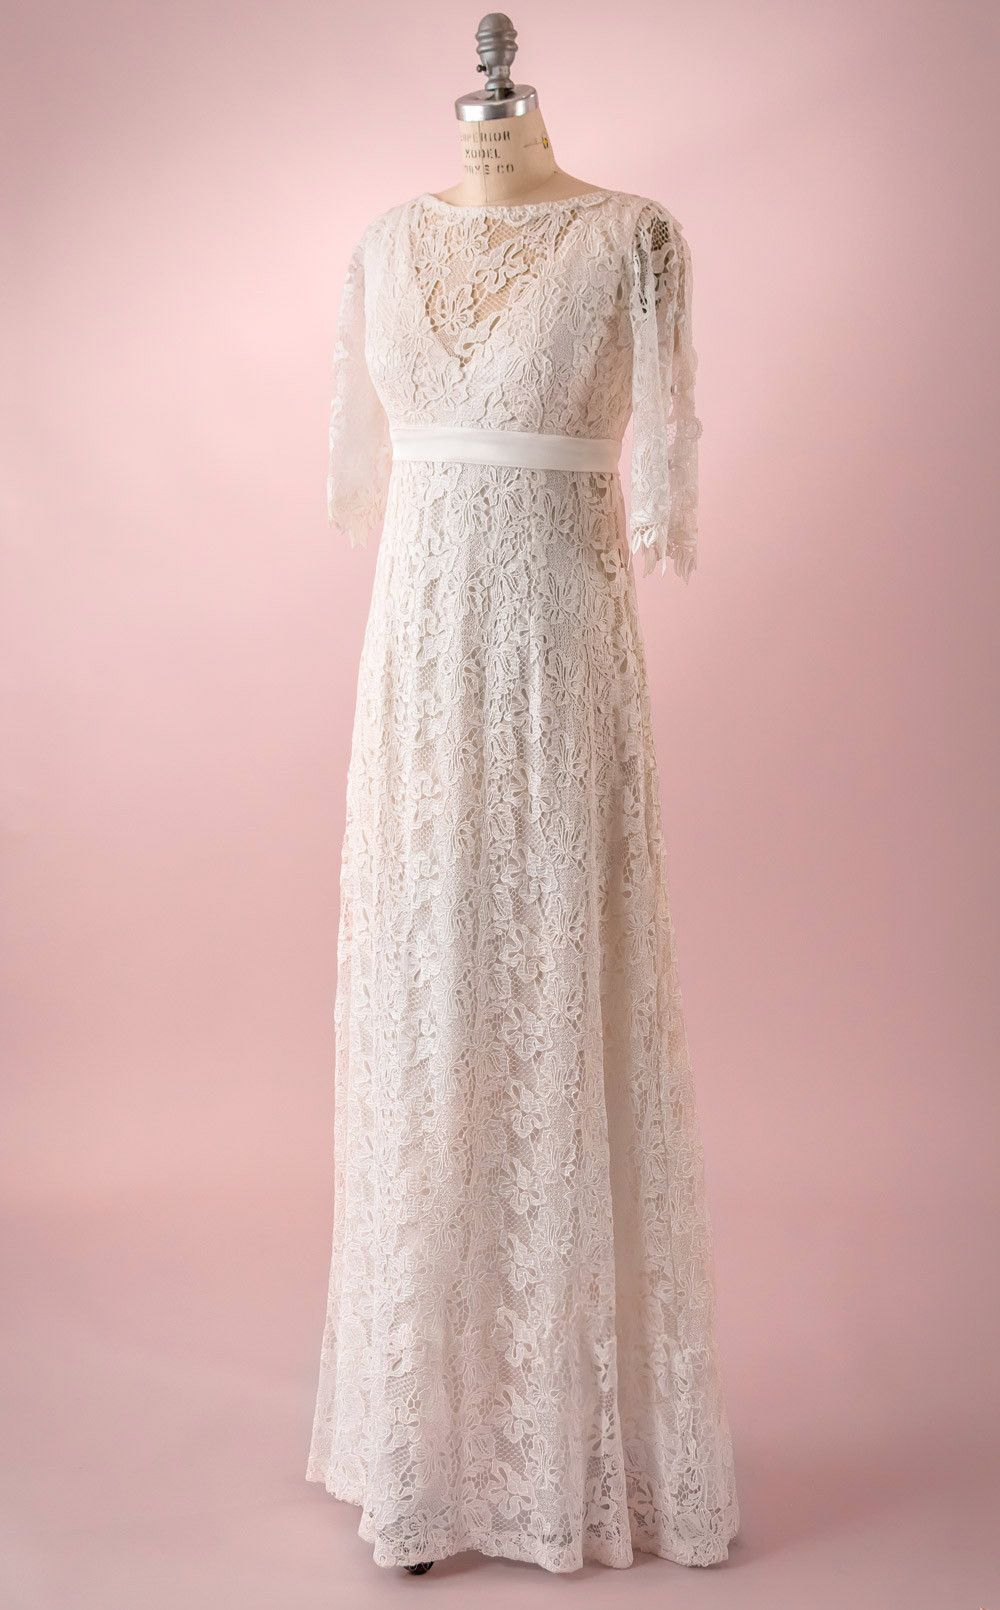 Anna by martin mccrea allover guipure lace wedding dress with